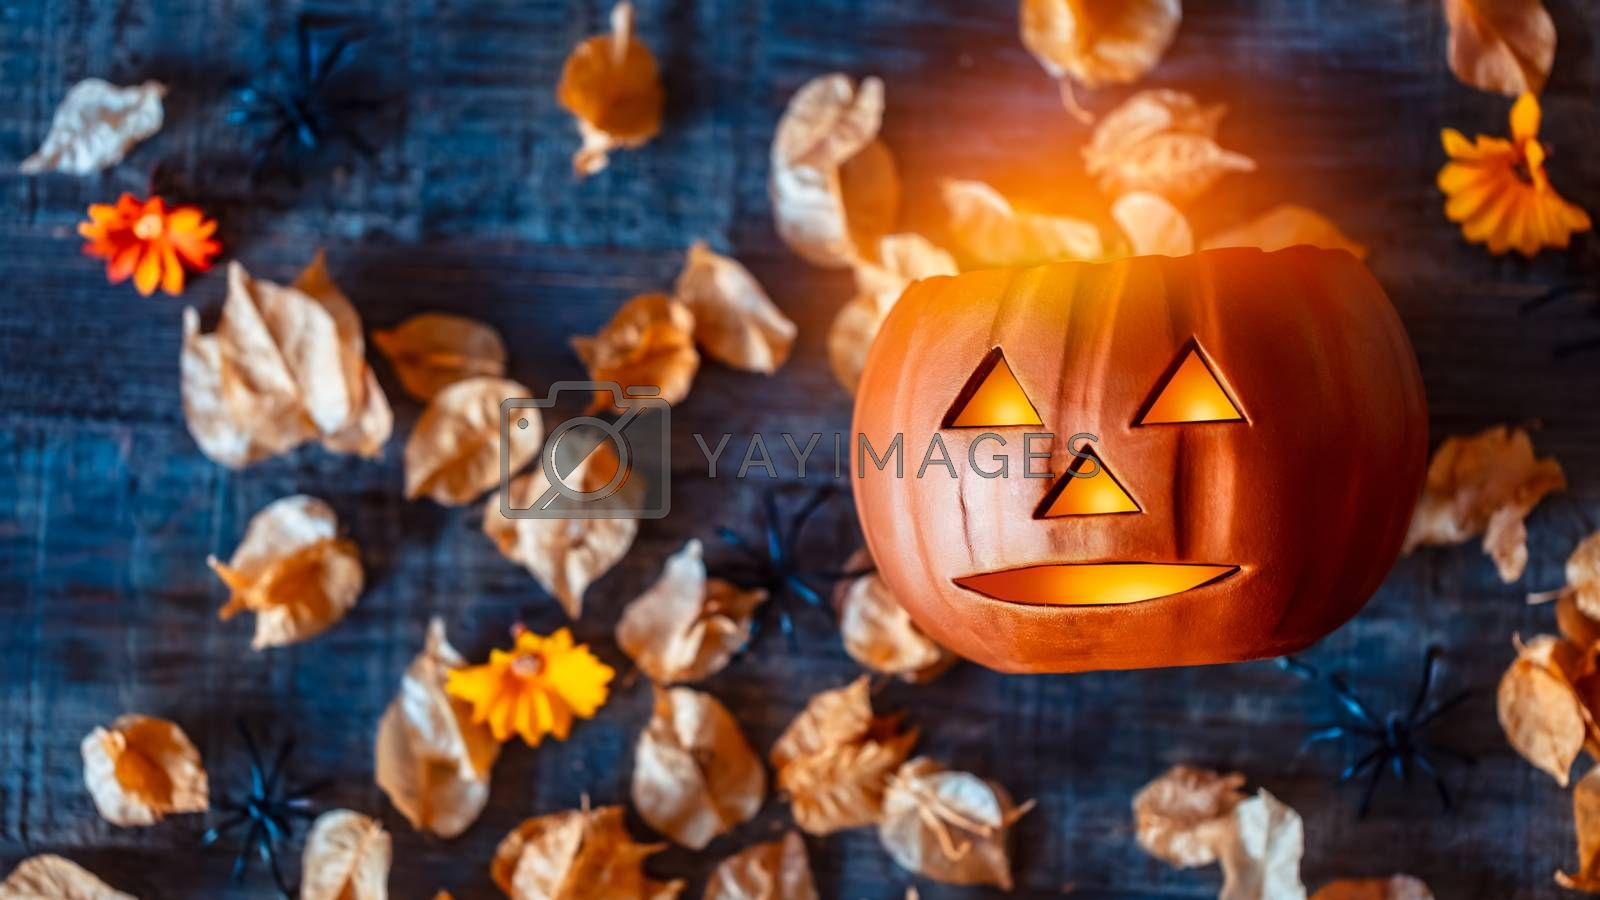 Carved Pumpkin as Jack-o-lantern with Grinning Face. Spooky Decoration for Halloween Party. Festive Still Life over Autumnal Leaves. Traditional American Holiday.